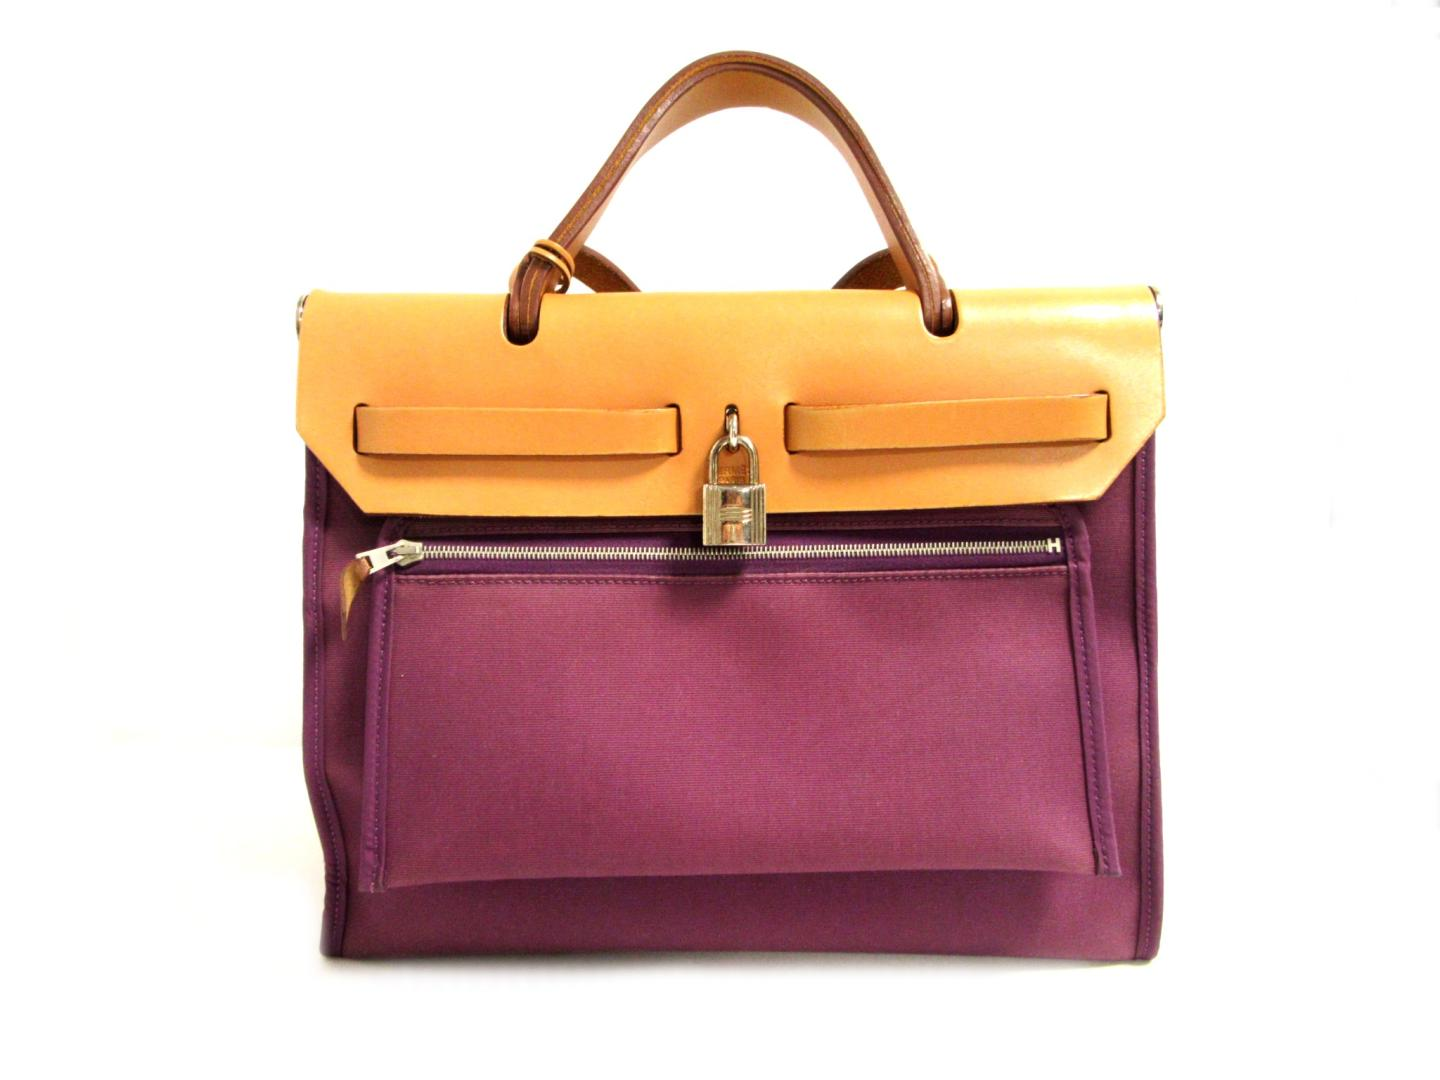 a6c40e02e ... promo code for authentic hermes herbag zip pm shoulder hand bag toile  officier anemone purple natural